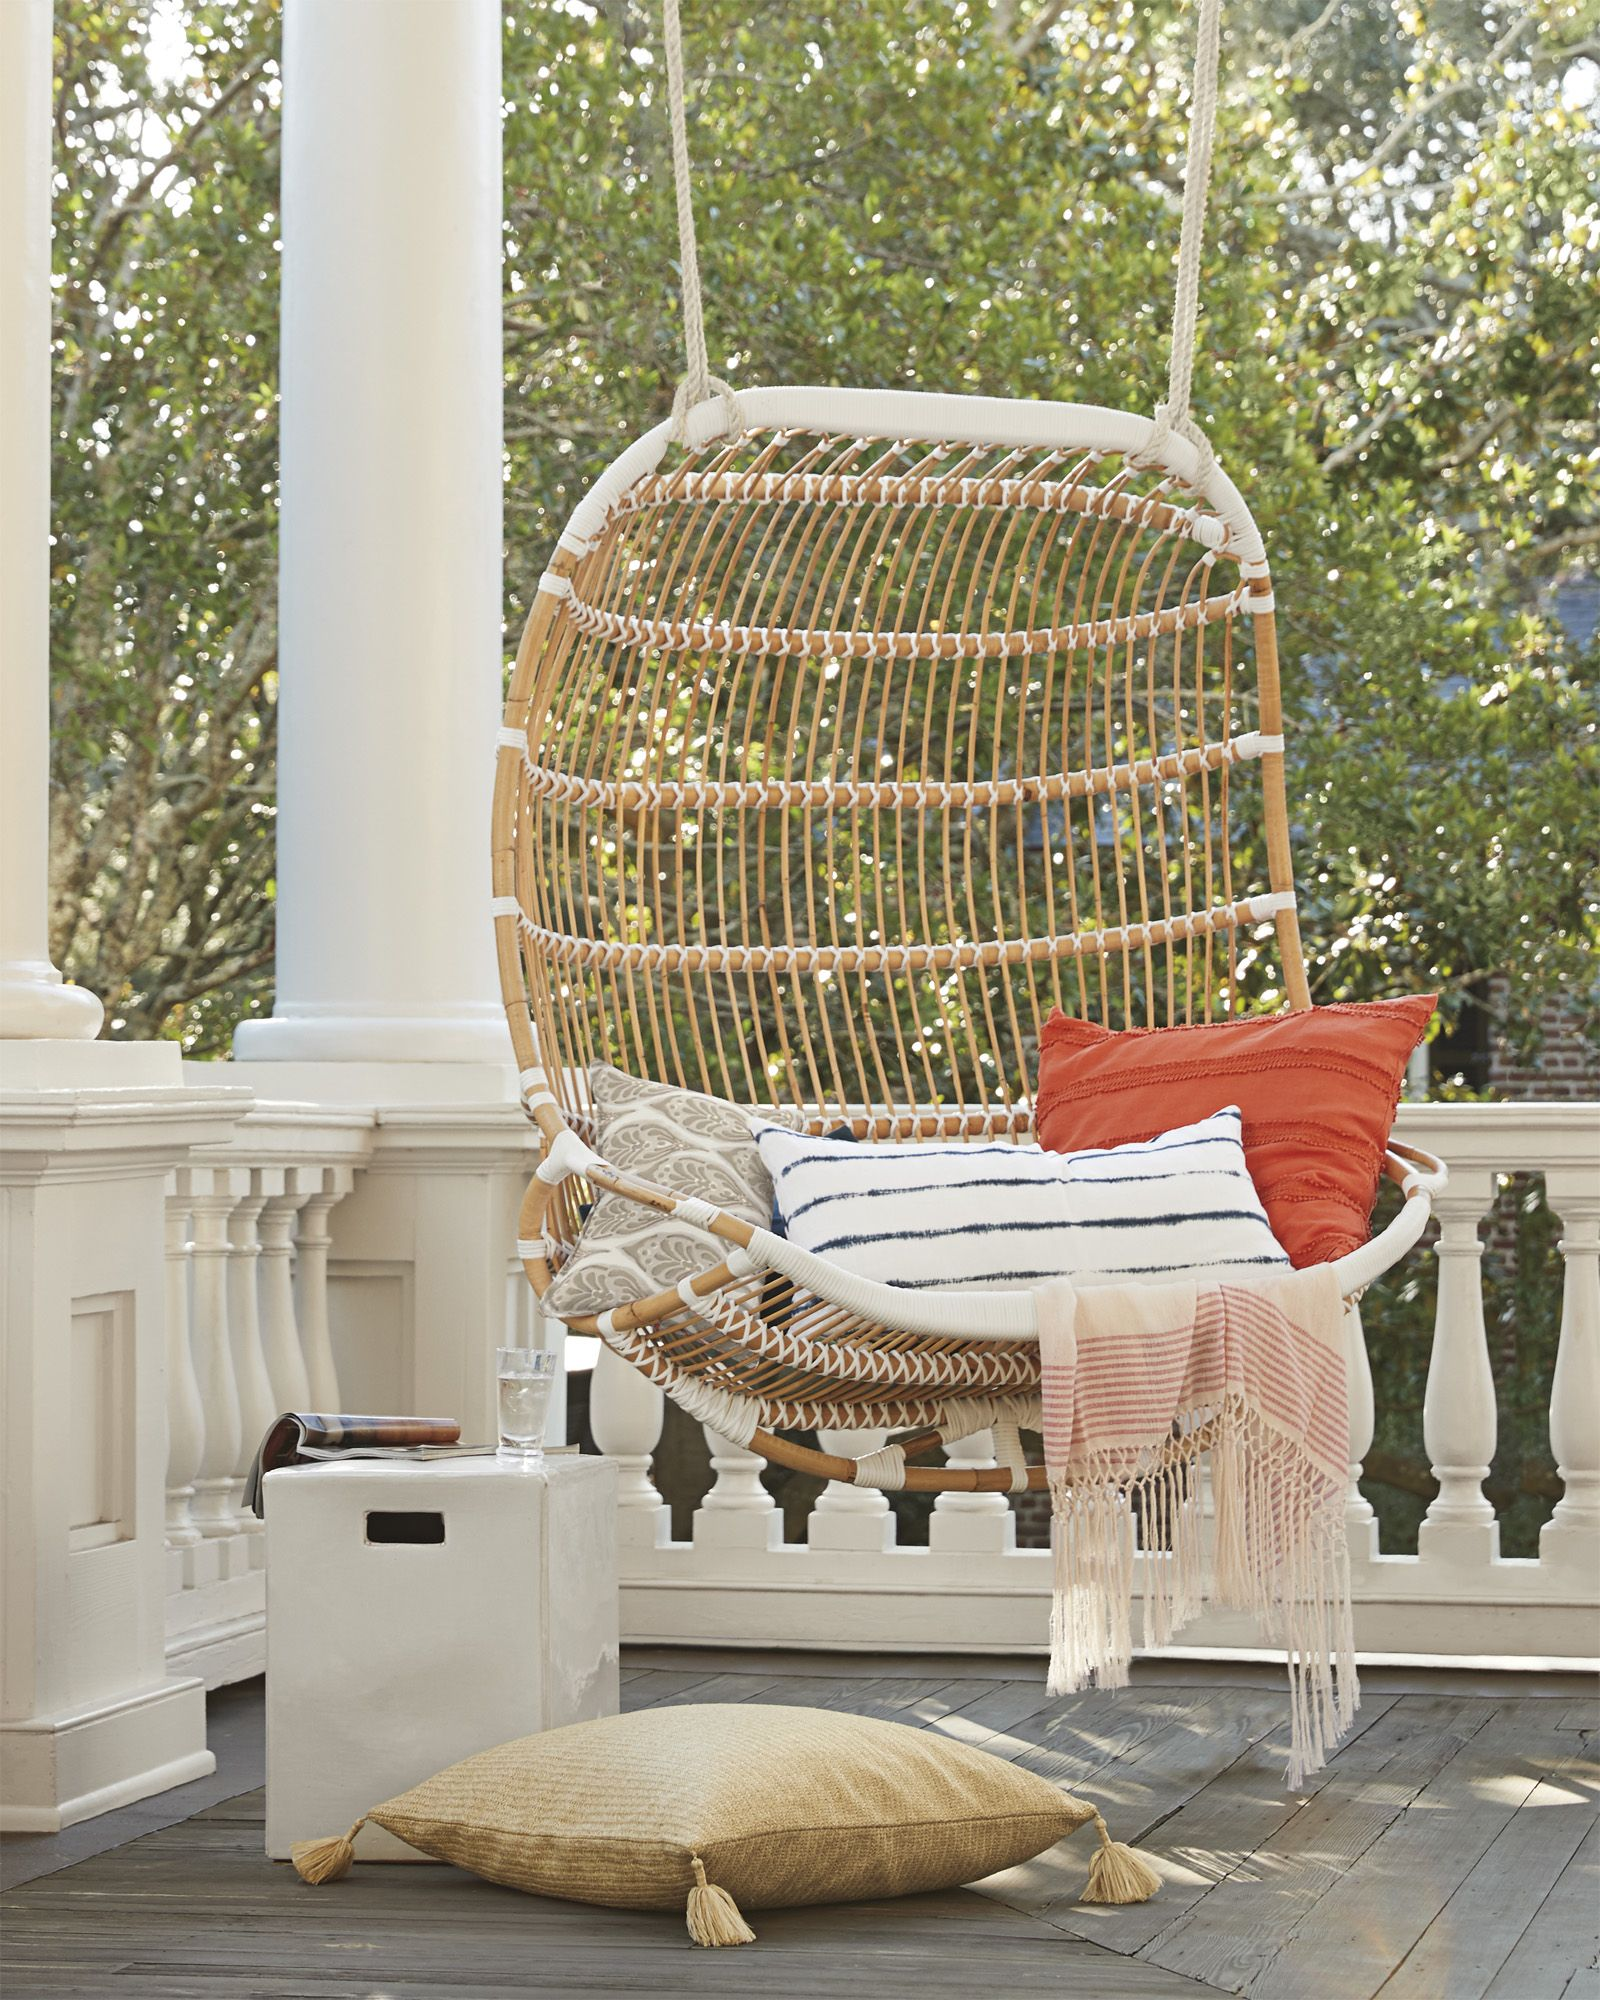 hanging patio chair desk posture corrector double rattan furniture porch decor a day for relaxing outdoors via serena lily